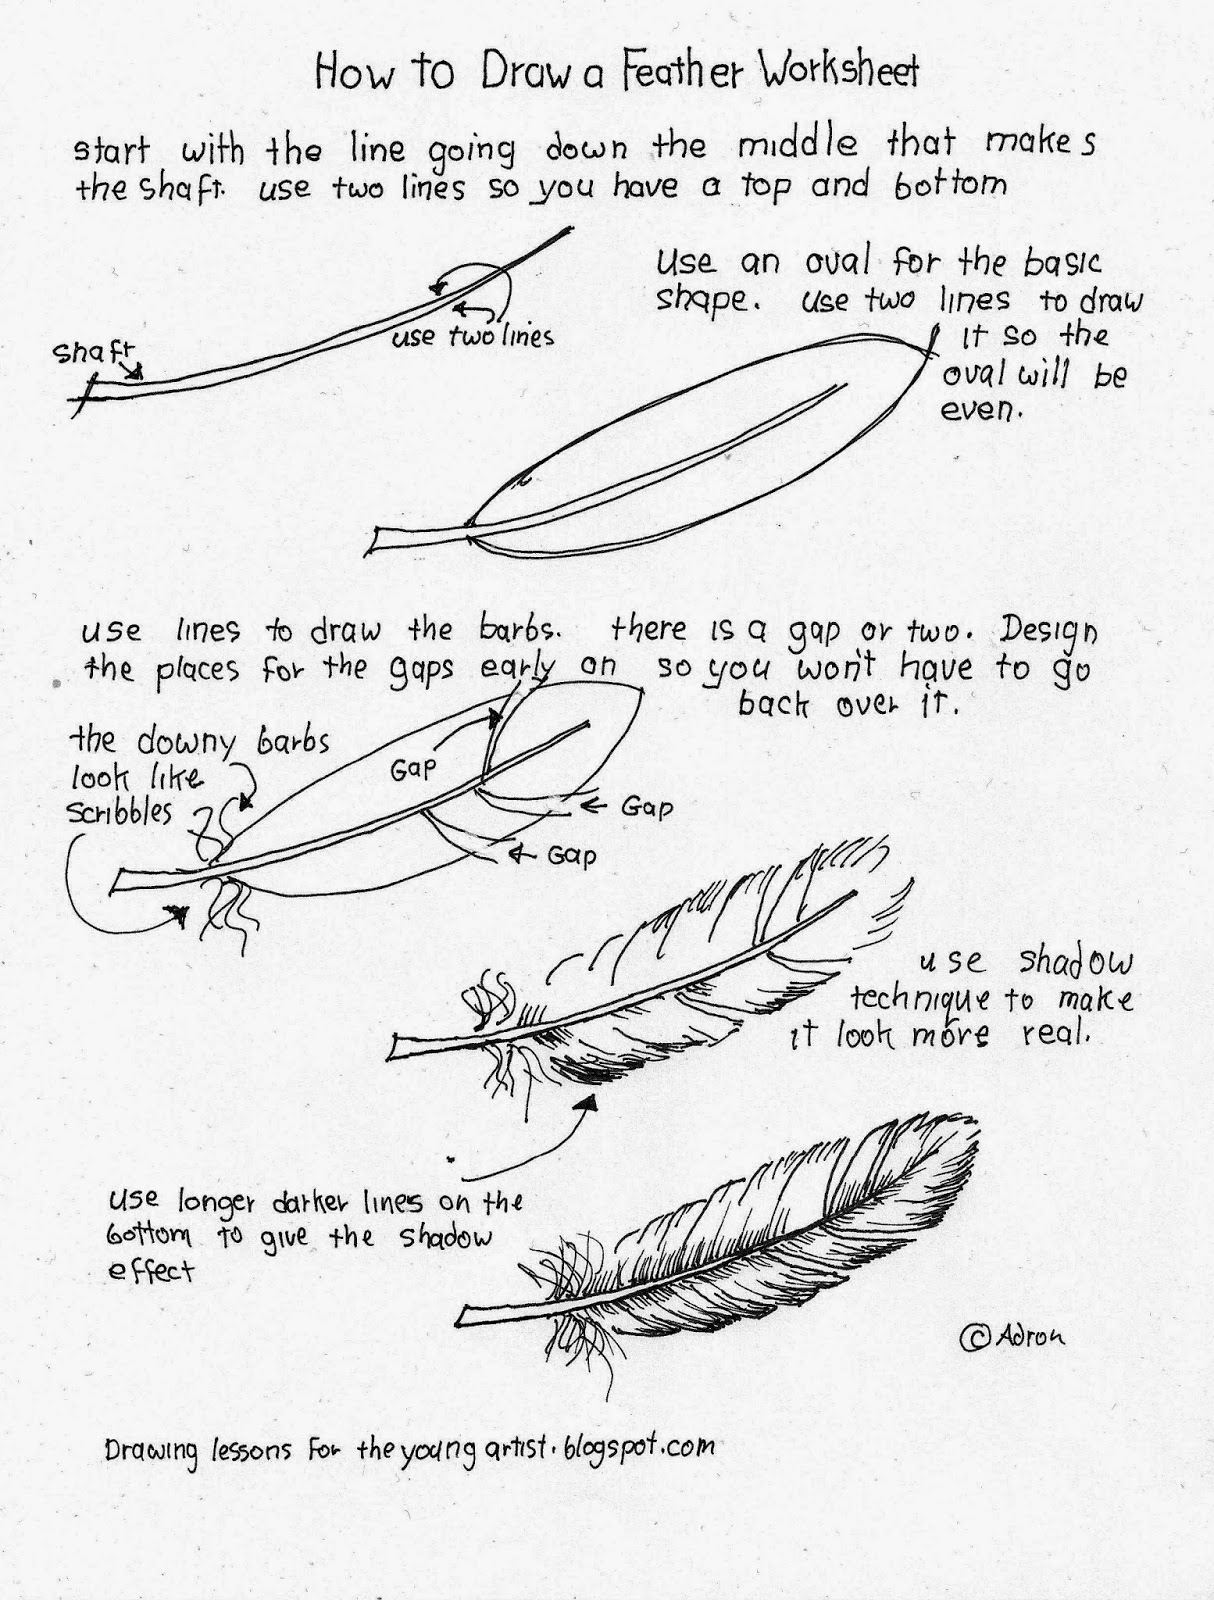 how to draw worksheets for the young artist how to draw a feather free worksheet. Black Bedroom Furniture Sets. Home Design Ideas